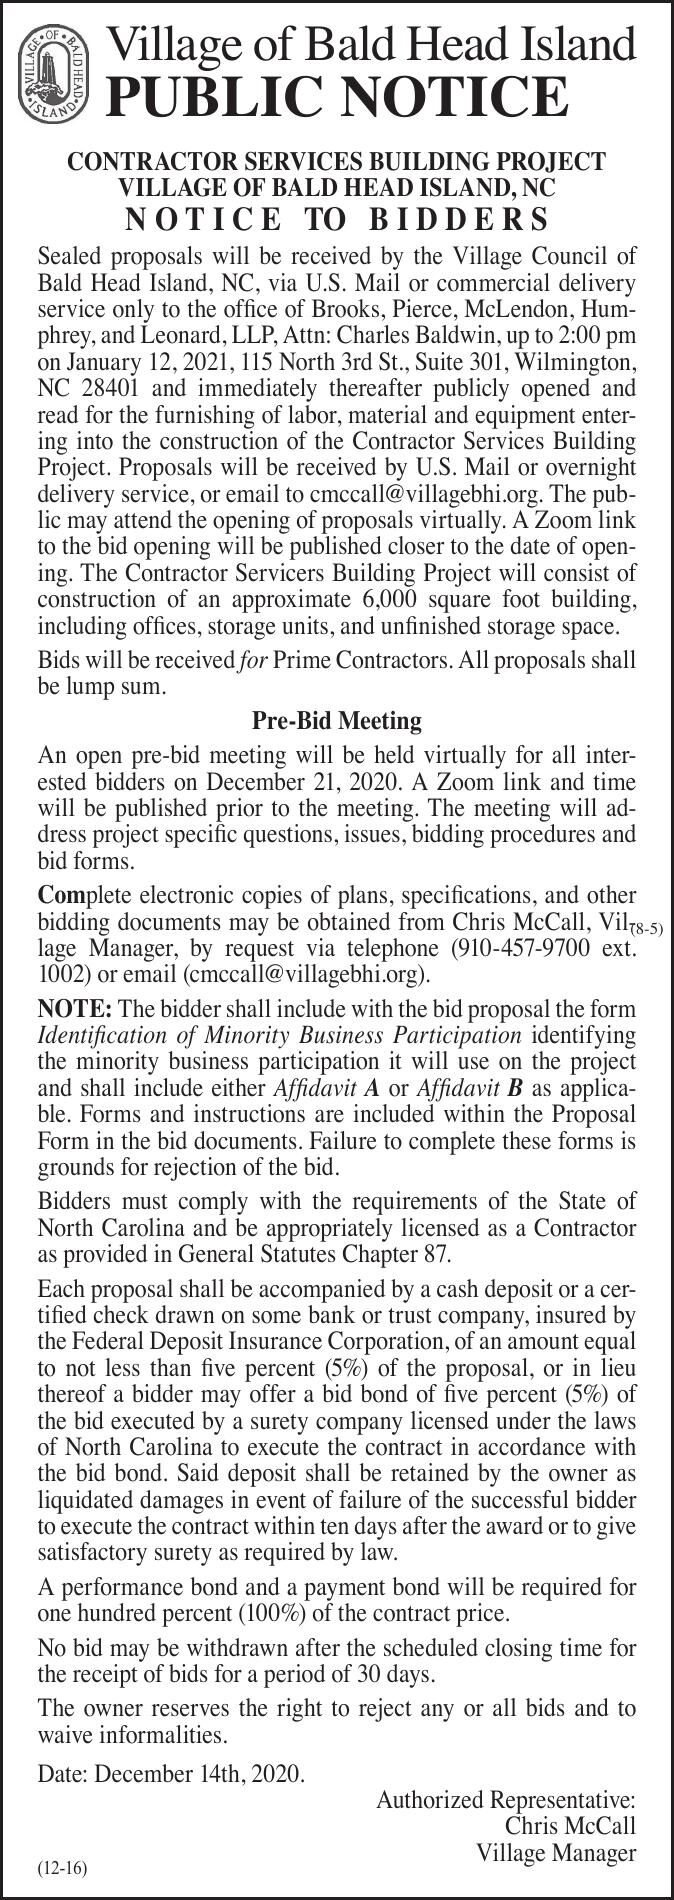 Village of Bald Head Island • CONTRACTOR SERVICES BUILDING PROJECT